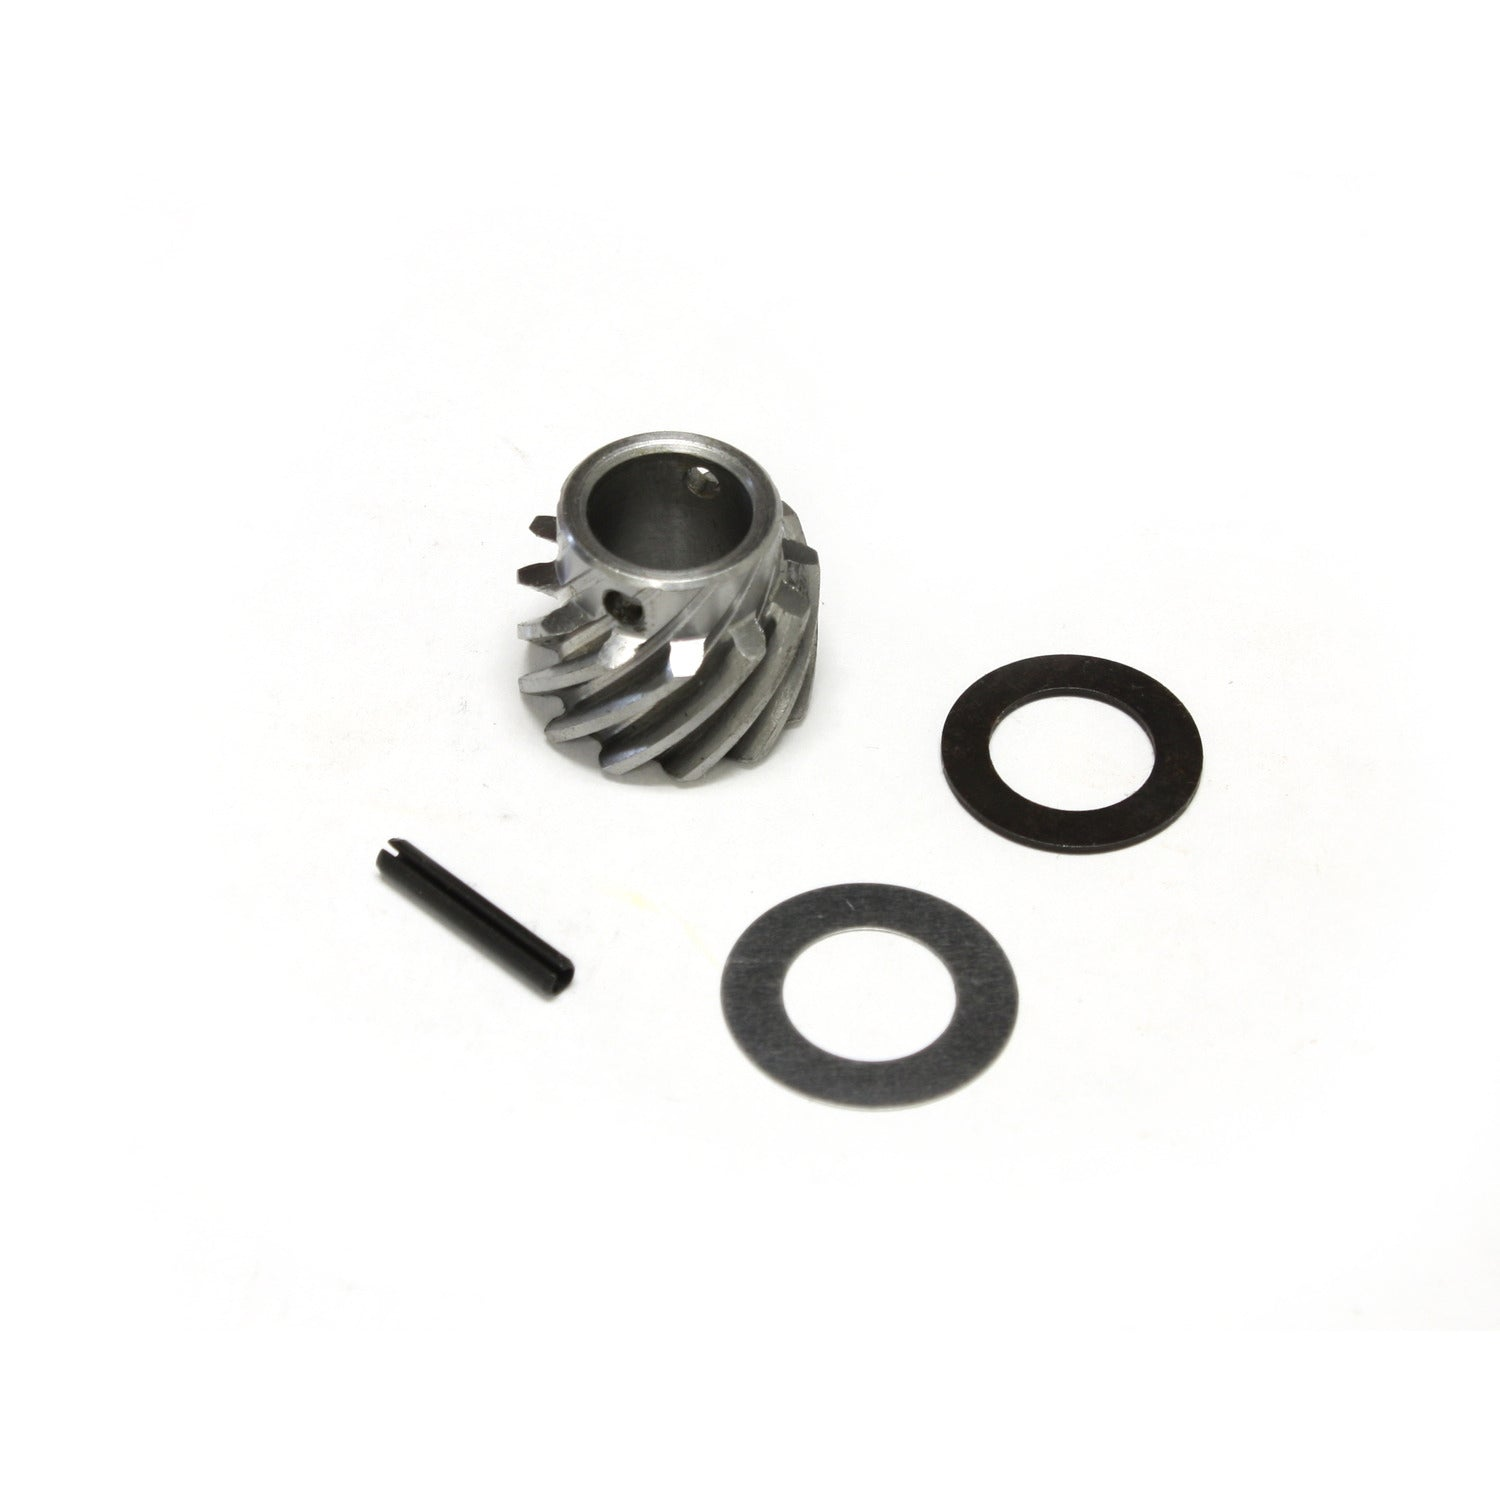 PerTronix 023-1007 Drive Kit for PerTronix Industrial Electronic Distributor